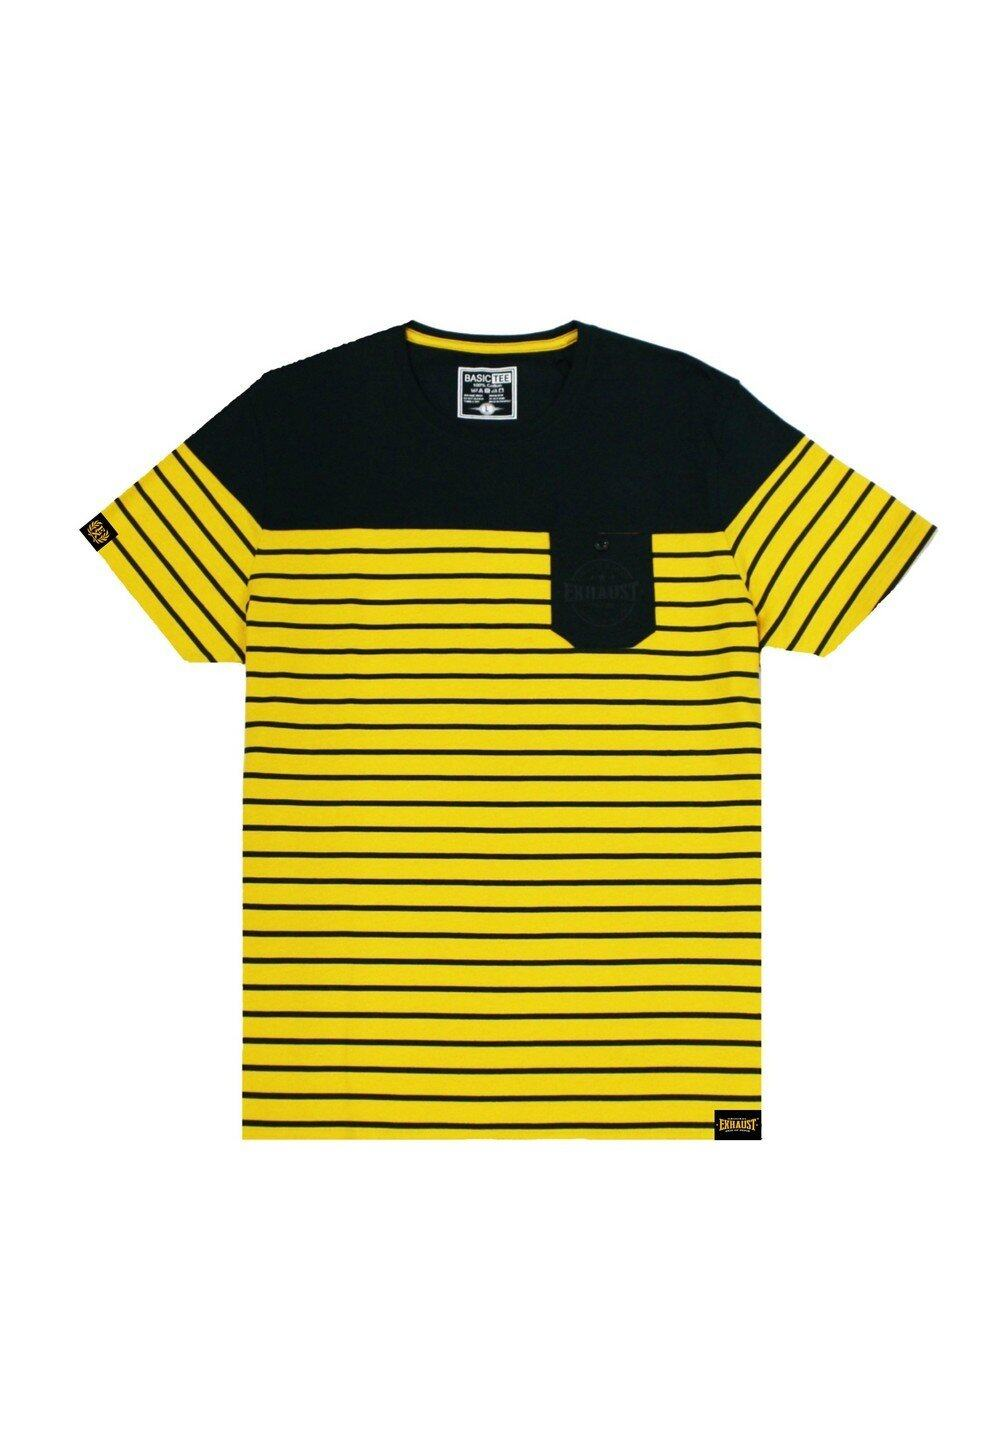 Stripe print with cut&sew and pocket